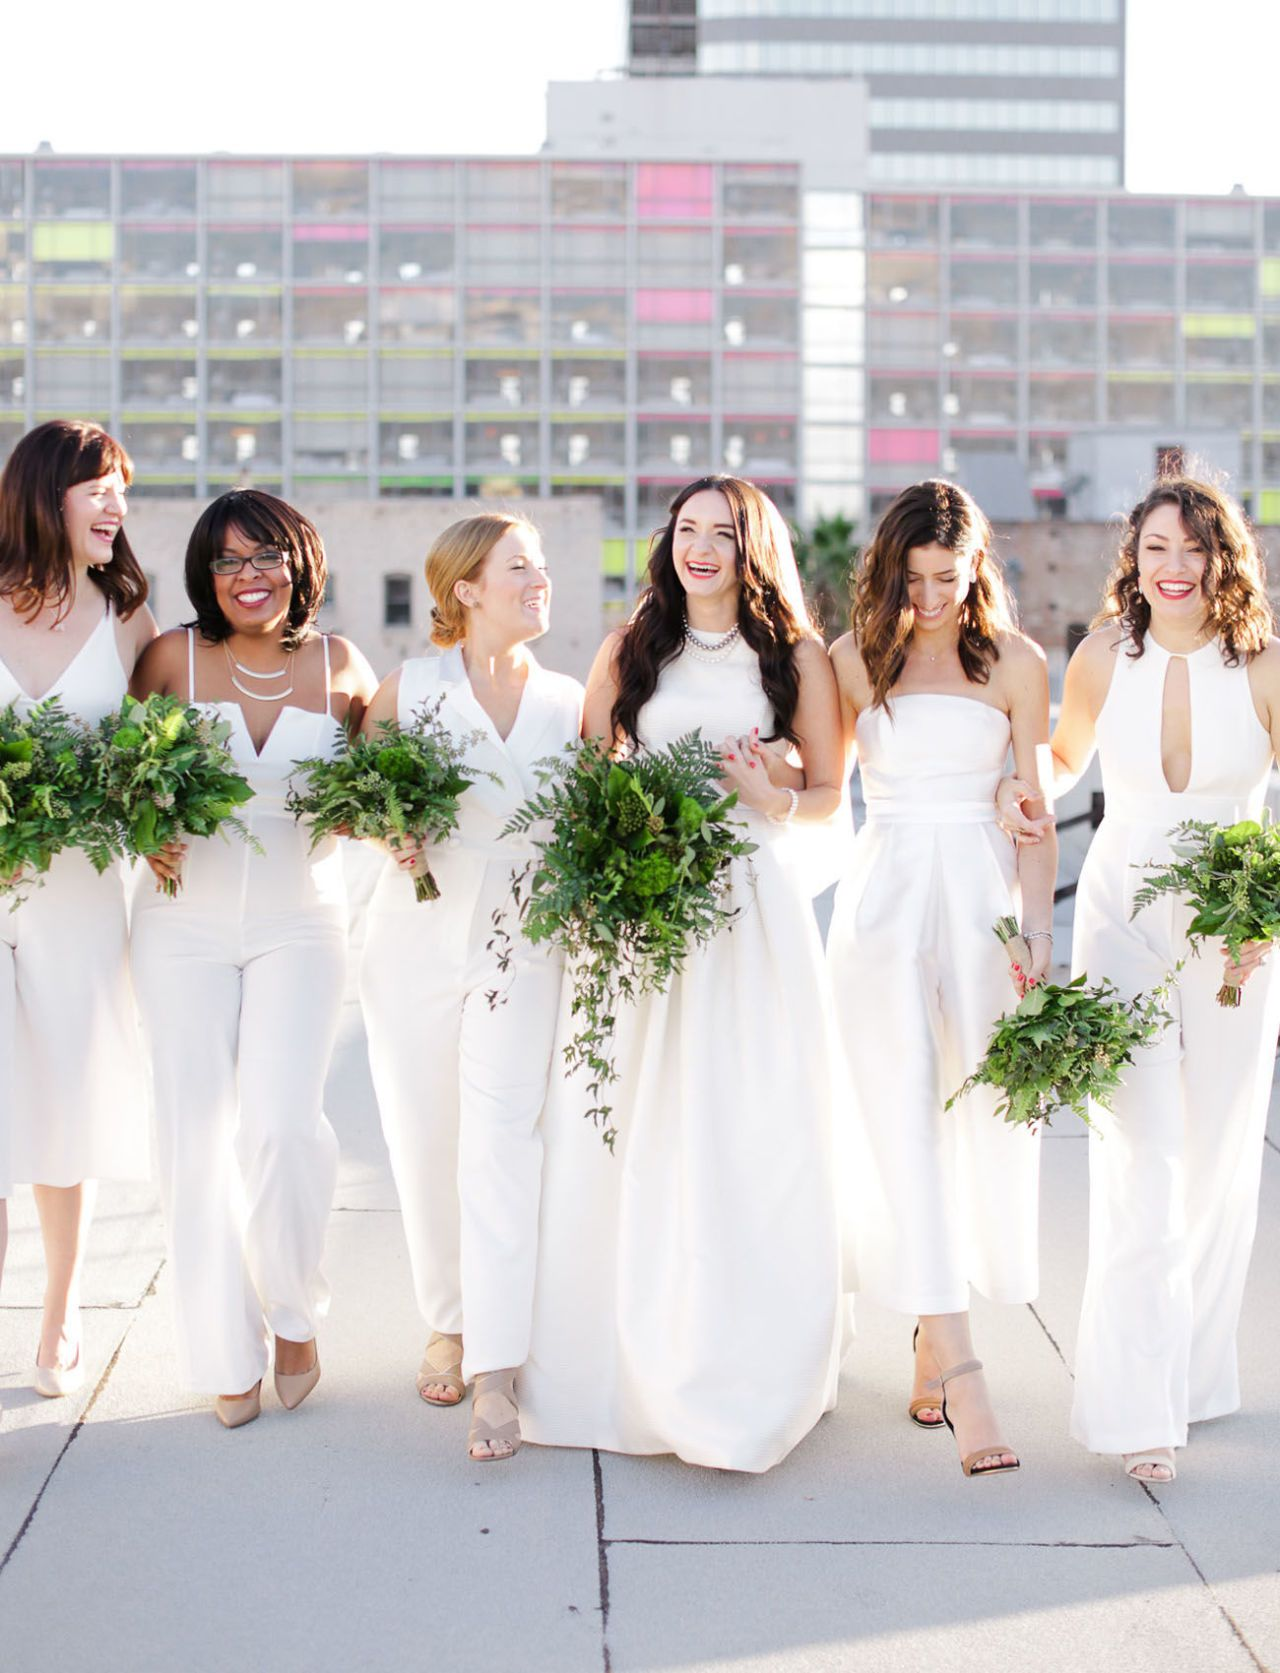 13 unique bridesmaid dress ideas for ballsy brides unique 13 unique bridesmaid dress ideas for ballsy brides ombrellifo Image collections